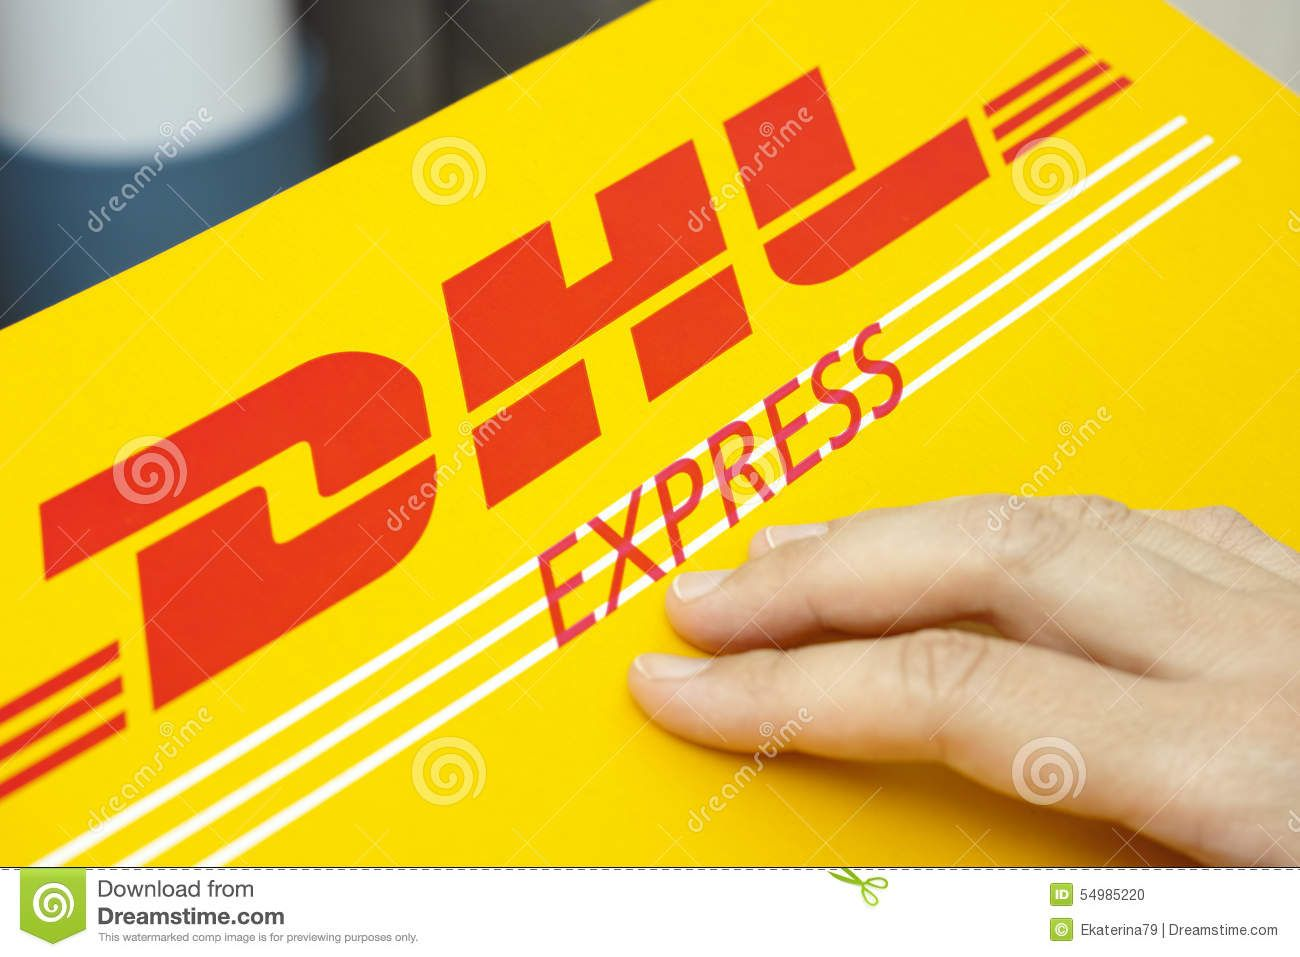 you to DHL express company. http//dhltrackingus